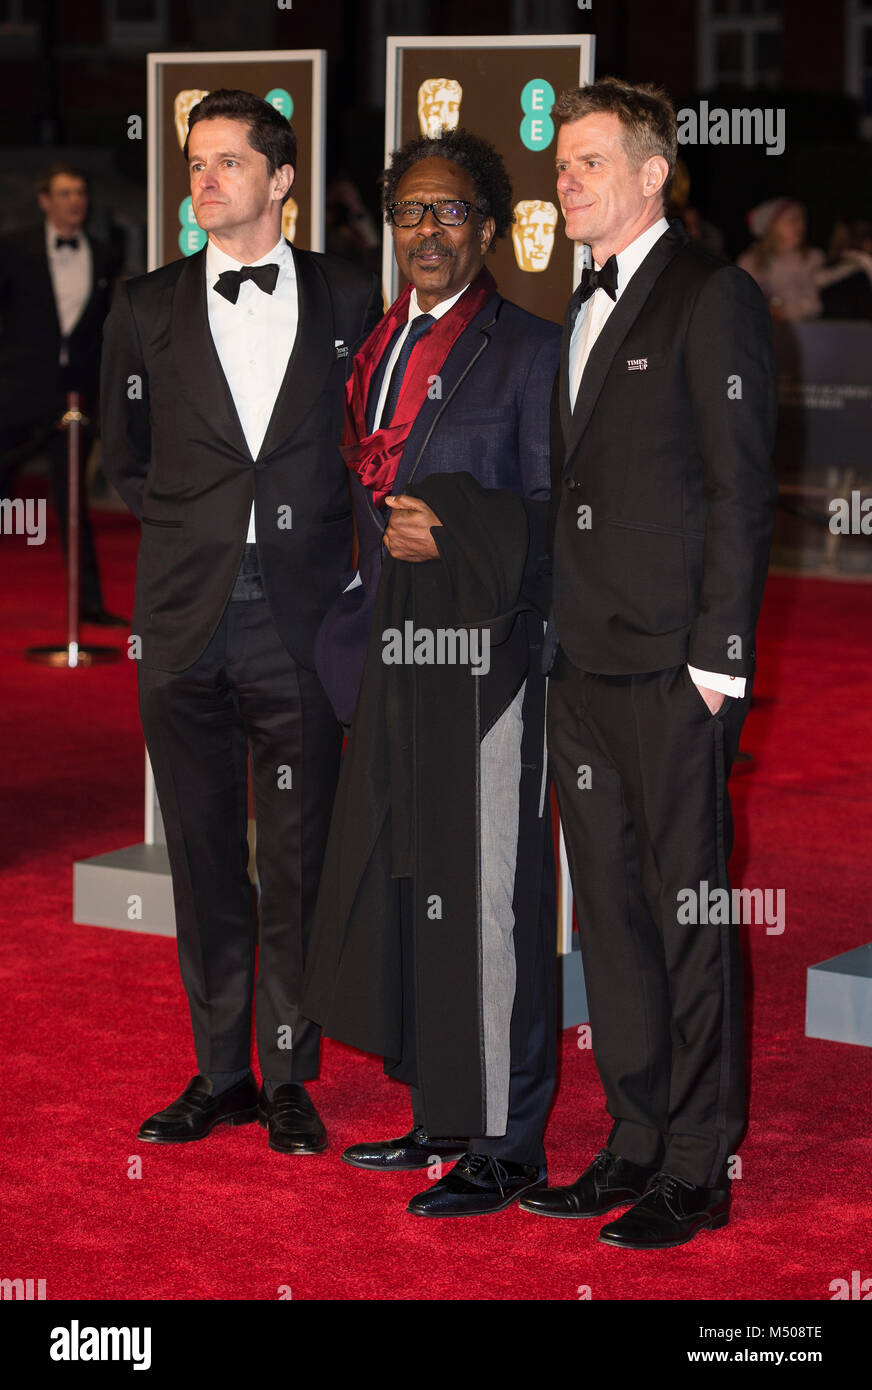 932d6e7c949e Clarke Peters (C) attends the EE British Academy Film Awards (BAFTA) held  at Royal Albert Hall on February 18